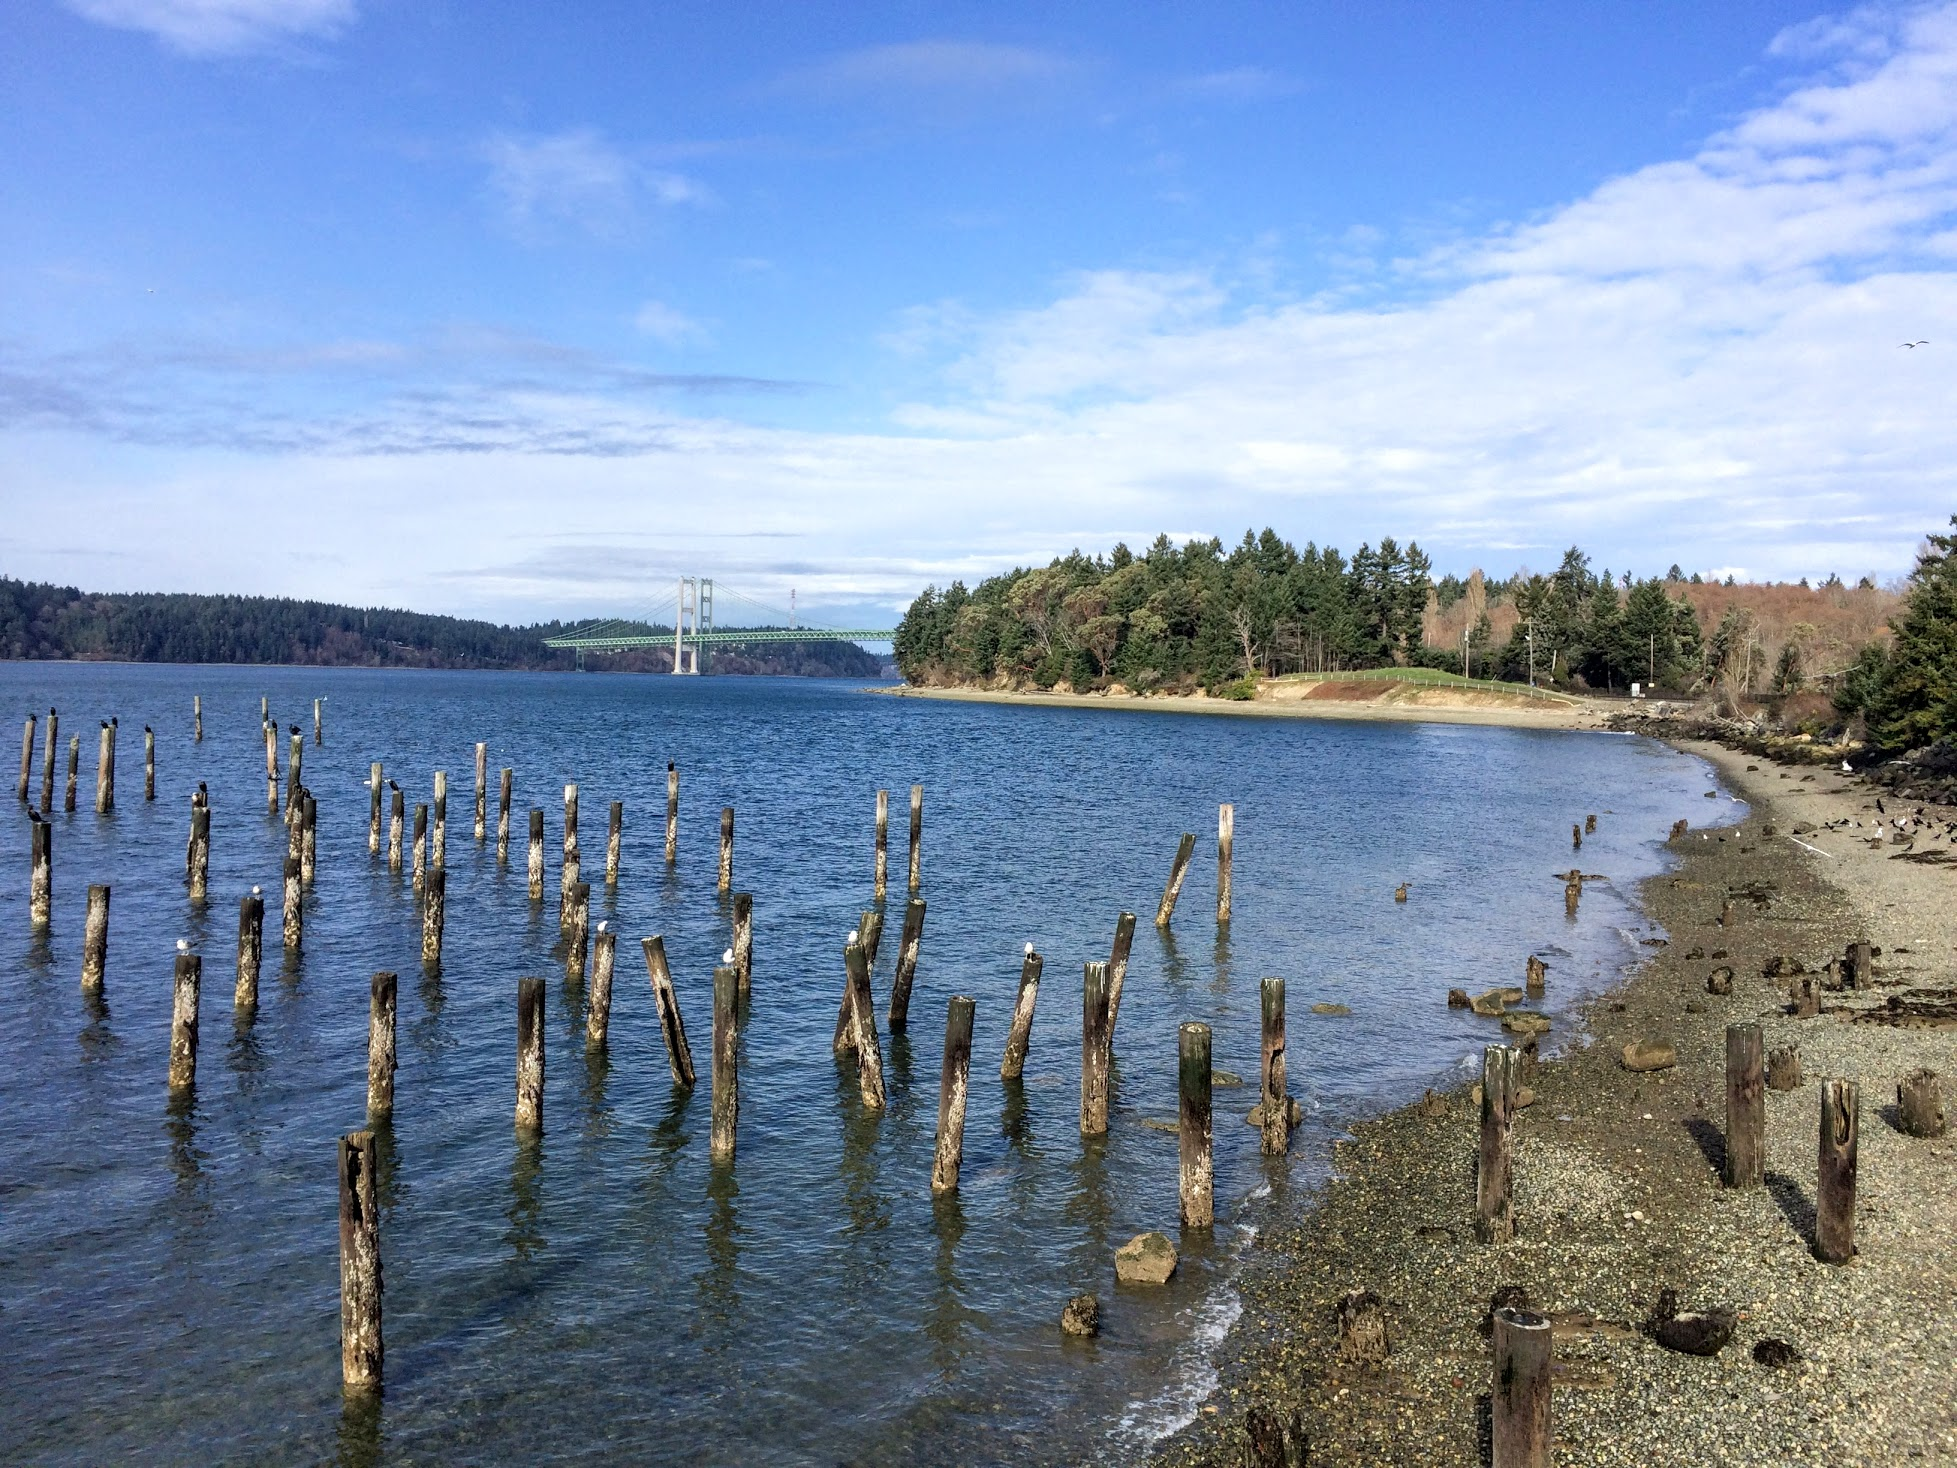 Titlow Beach, just a 10 minute drive from 805 Spring St. includes a park with trails, spray ground, tennis courts, and more.